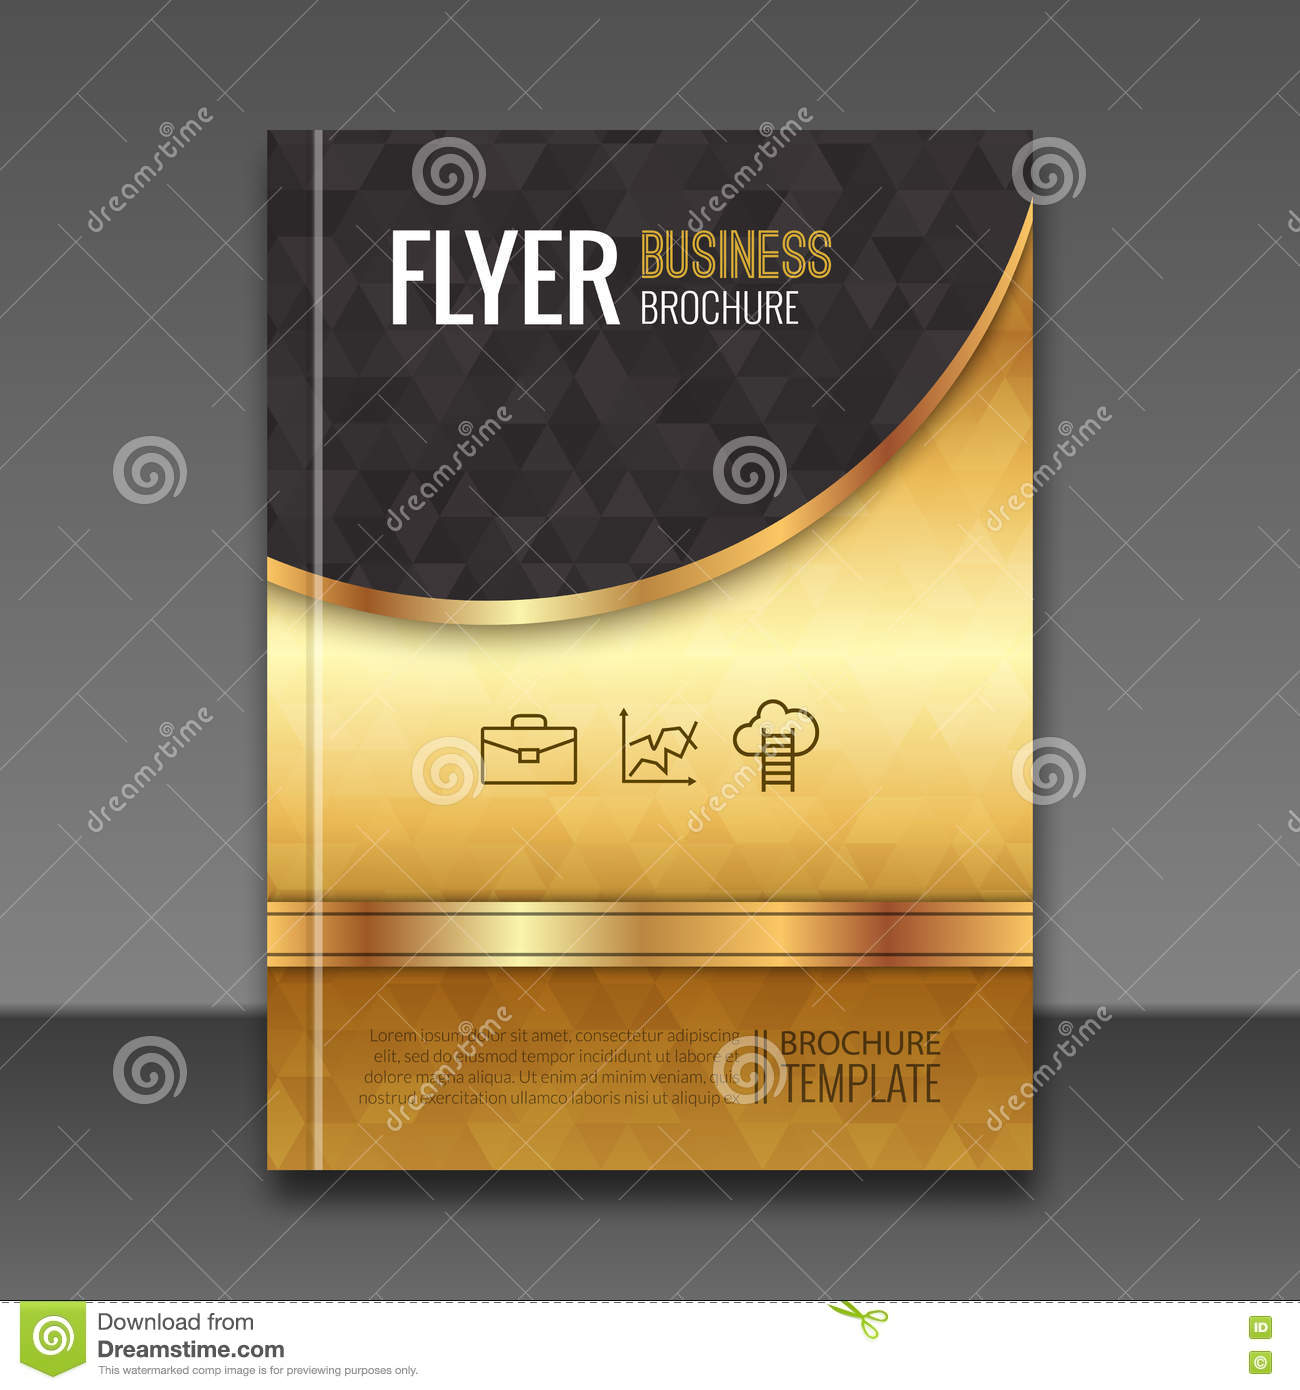 Book Cover Design Elements : Golden background flyer template luxury brochure book